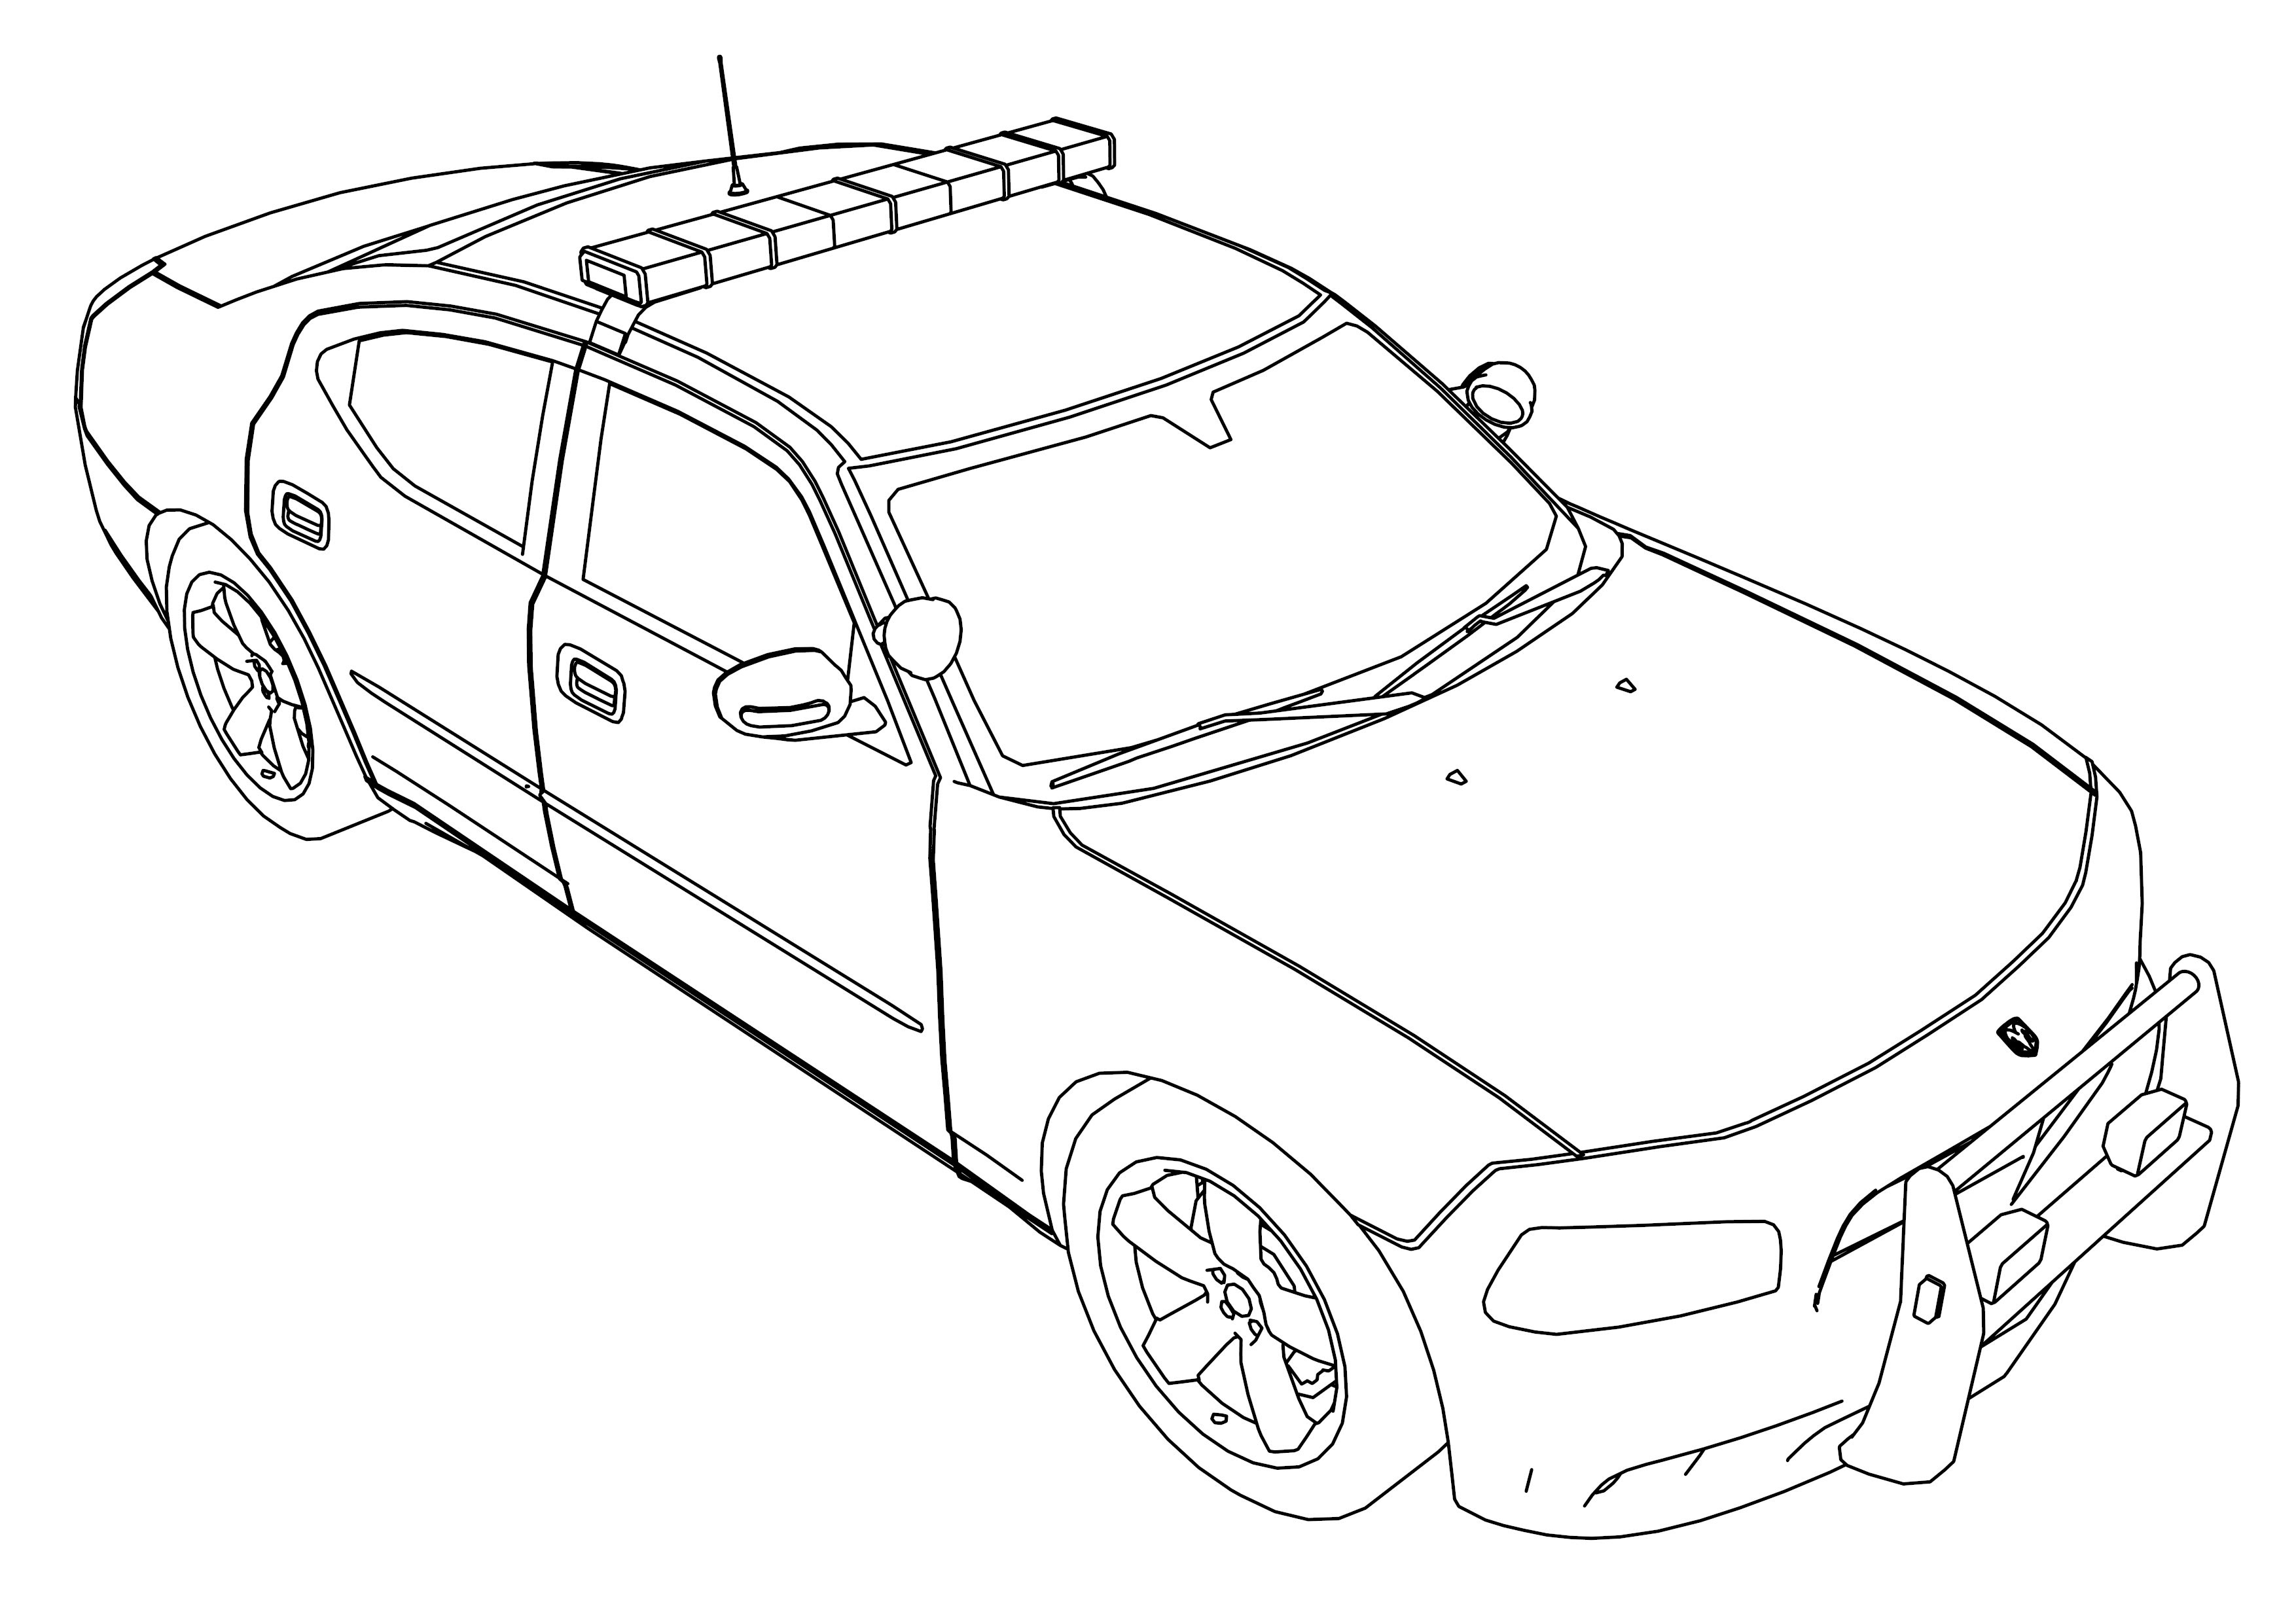 Police car coloring pages to download and print for free